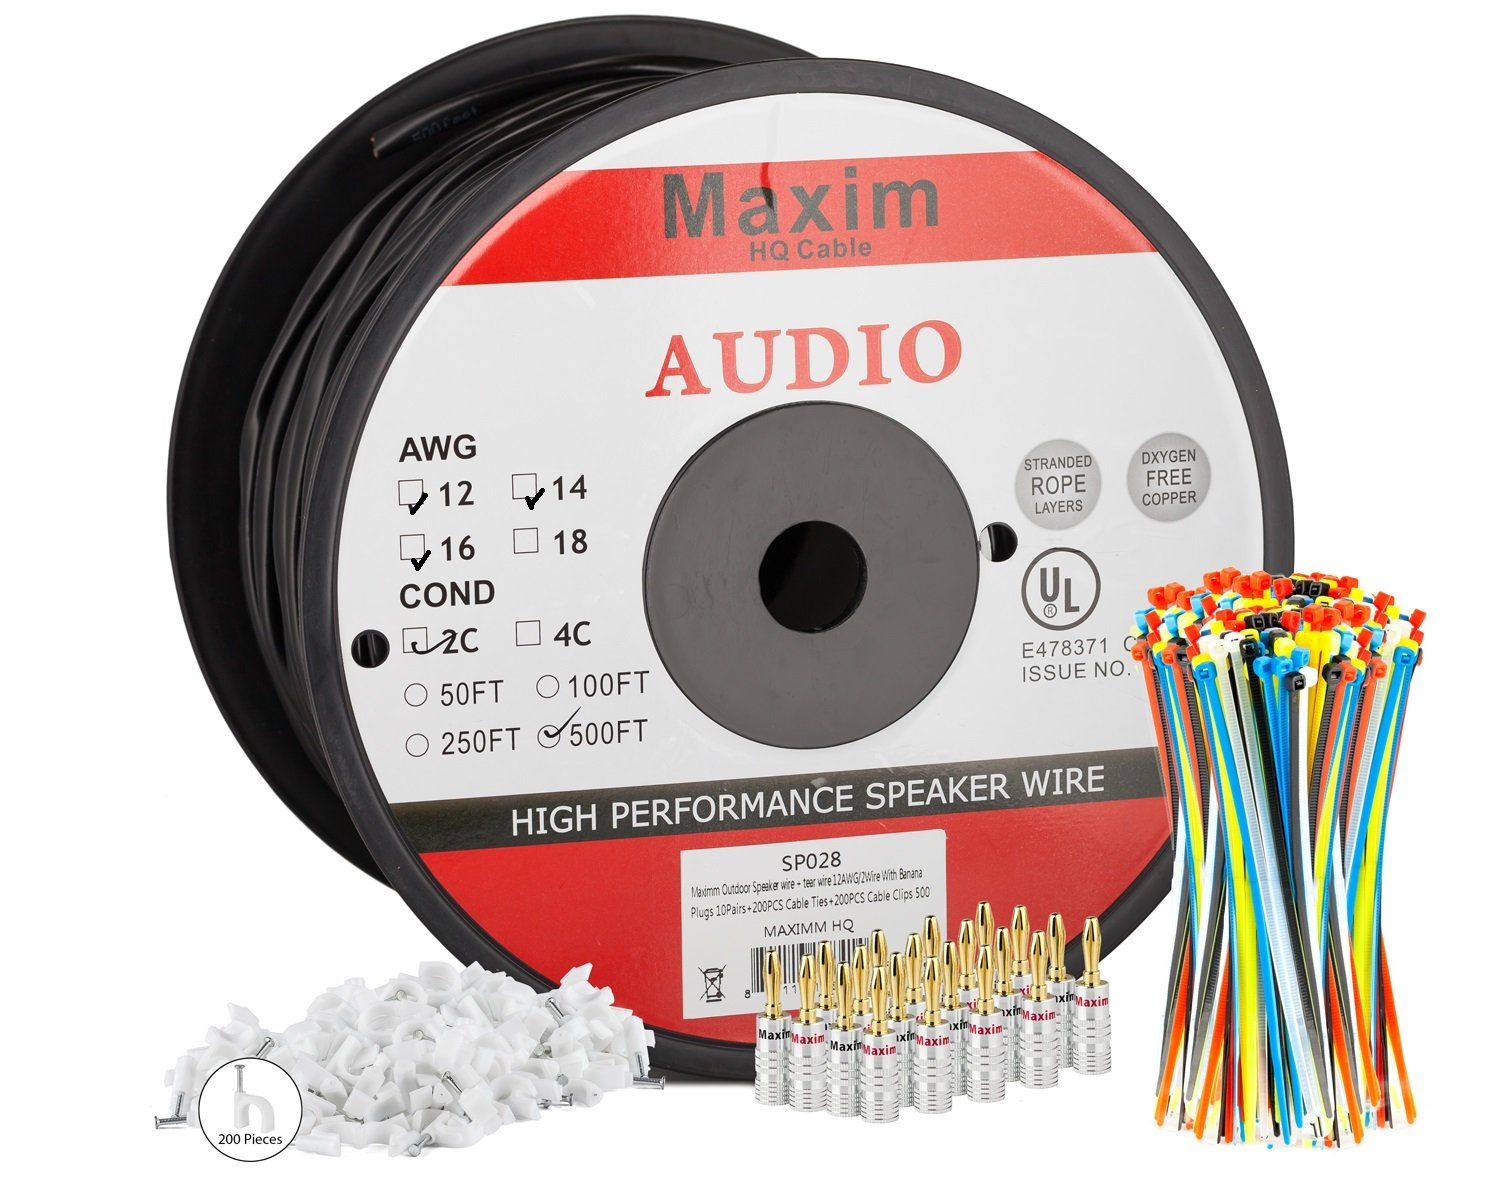 Maximm Outdoor Speaker Wire - 500 Feet - 12AWG CL3 Rated 2-Conductor Wire - Black , Pure Copper - Banana plugs, Cable clips and ties Included